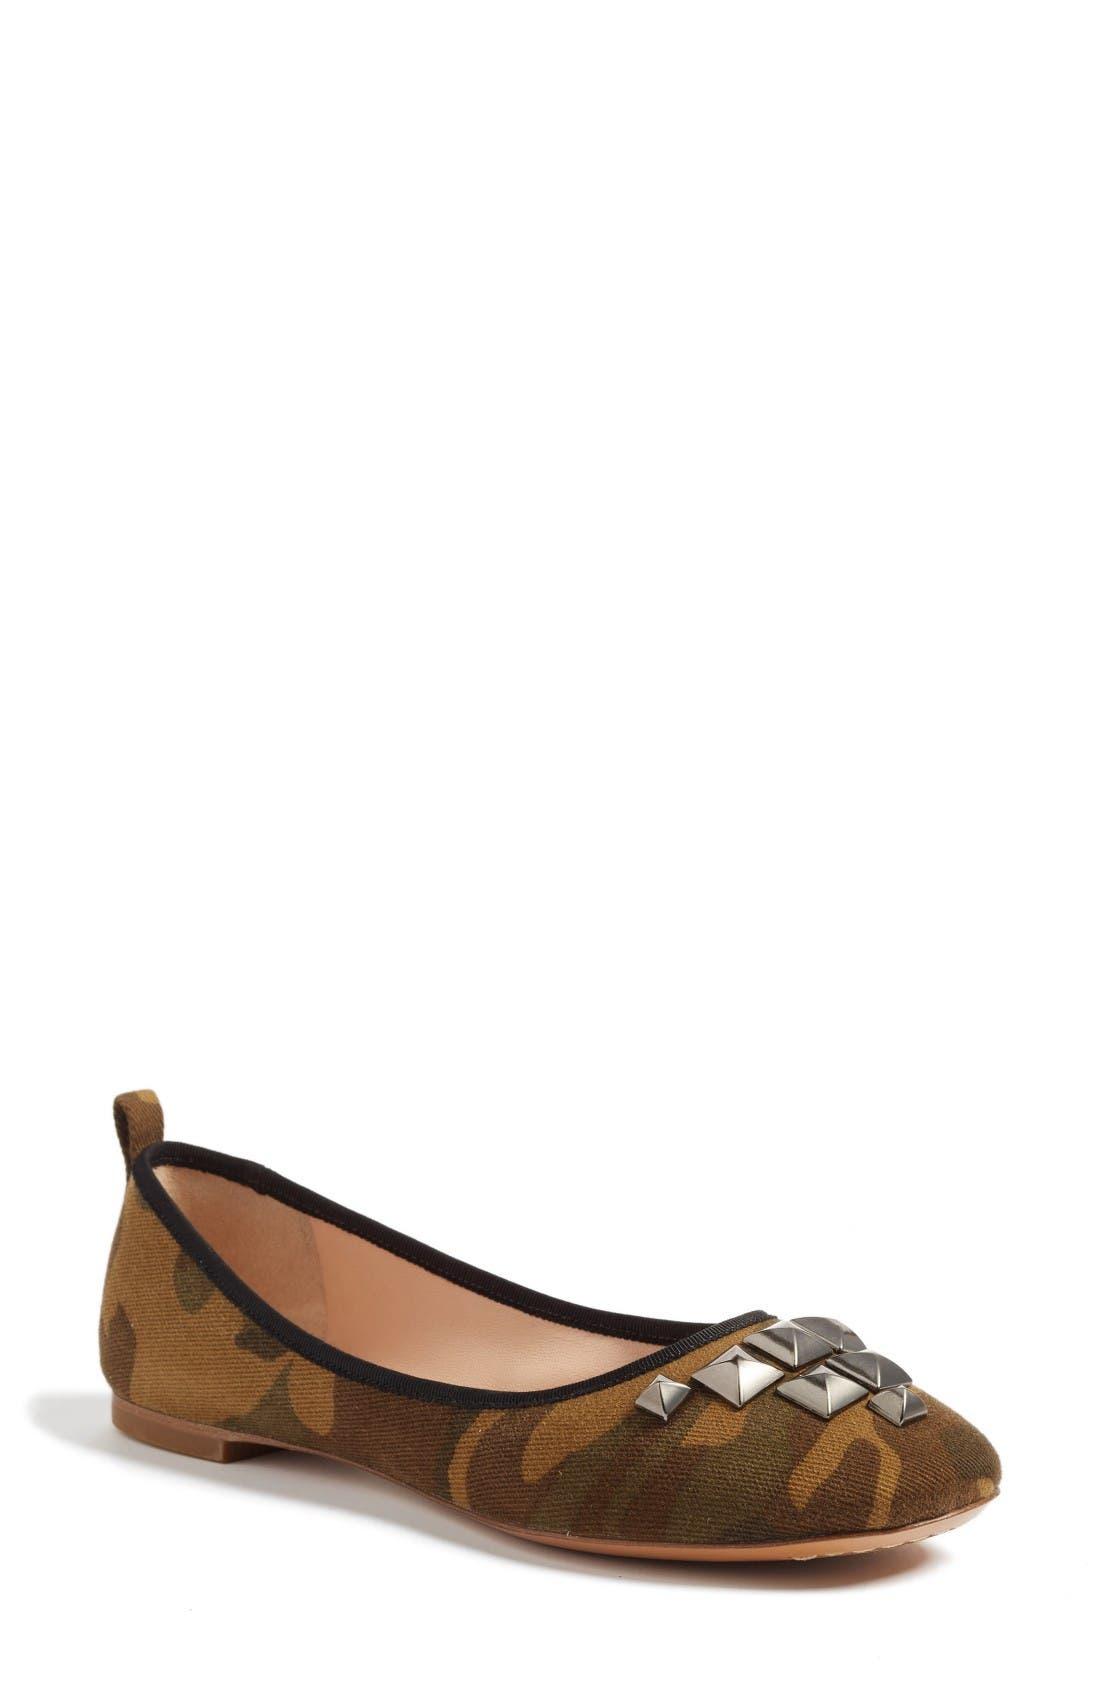 MARC JACOBS Cleo Studded Ballet Flat